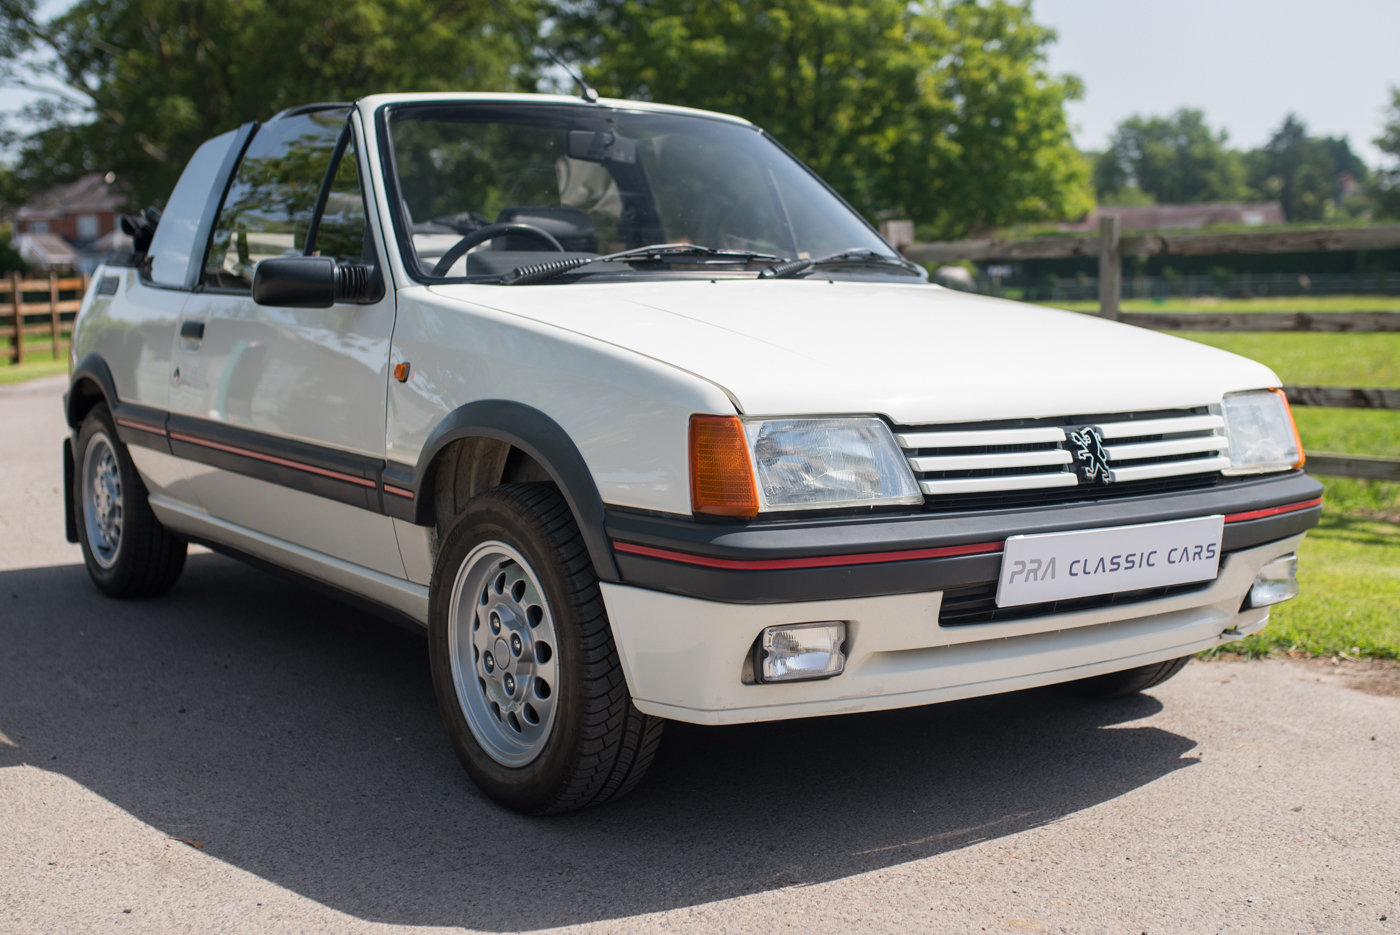 1988 Peugeot 205 CTI 1.6 Convertible For Sale (picture 1 of 6)